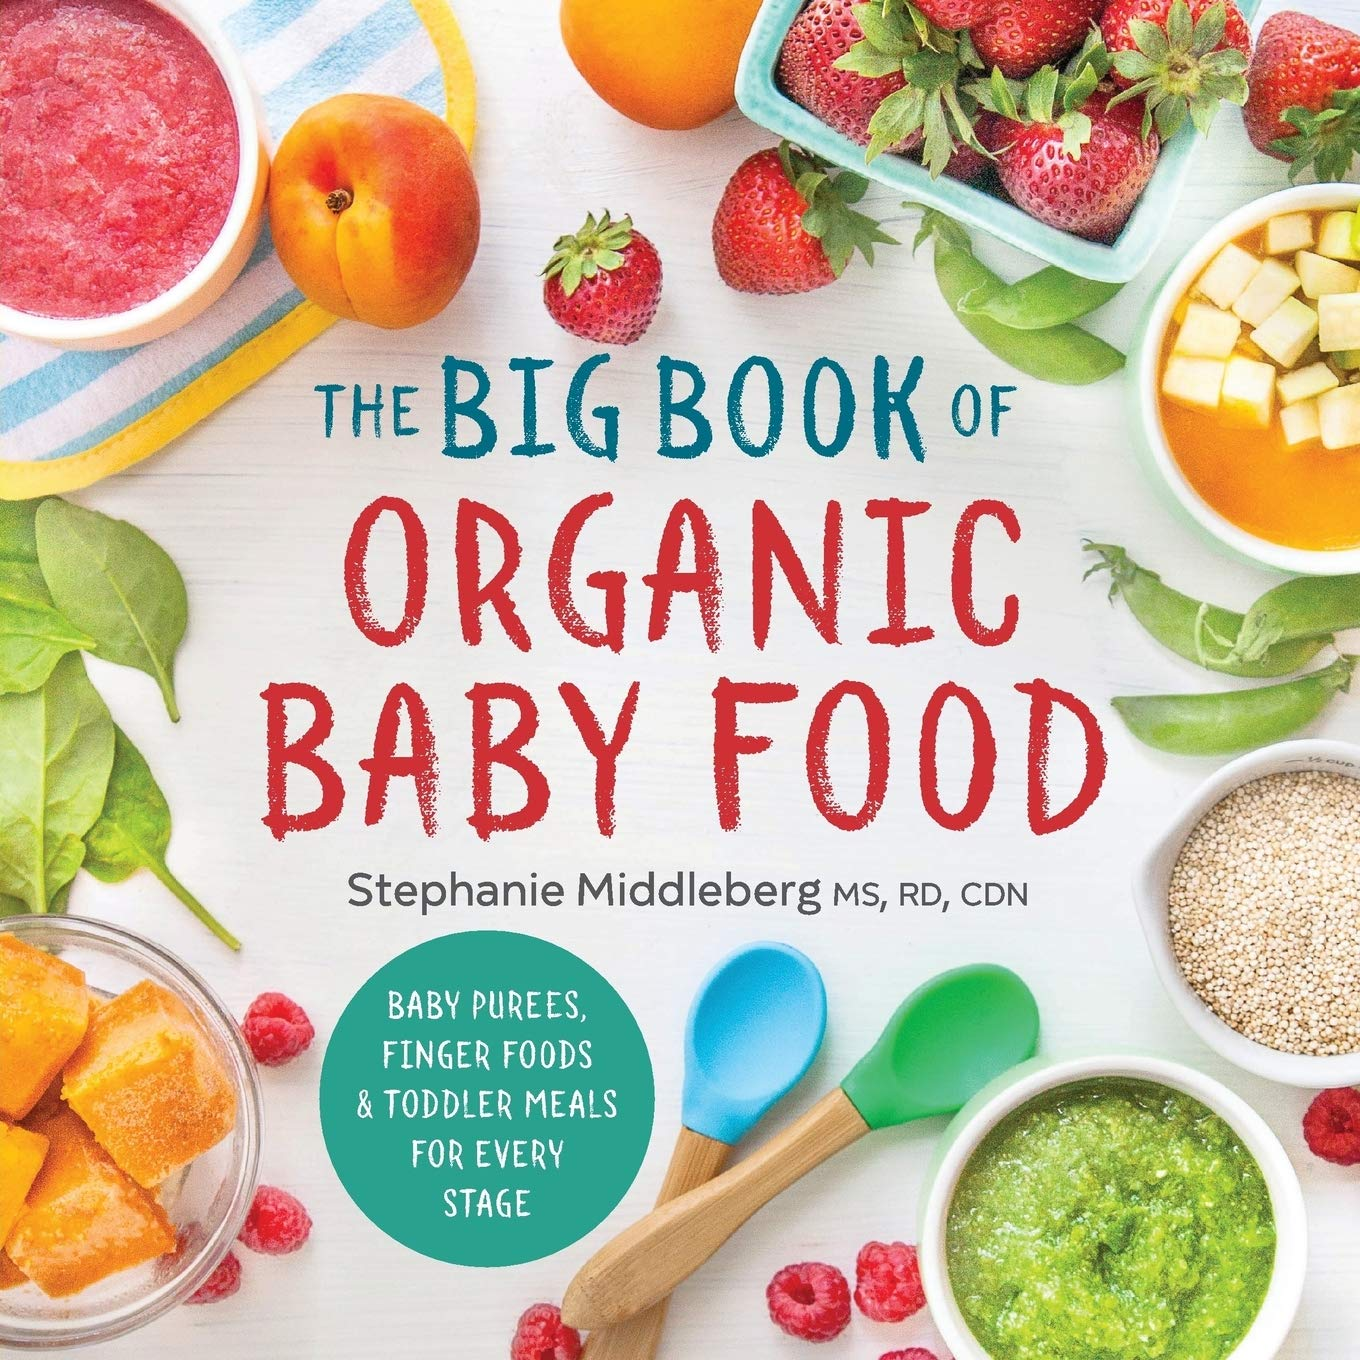 The Big Book Of Organic Baby Food Baby Purees Finger Foods And Toddler Meals For Every Stage Middleberg Ms Rd Cdn Stephanie 9781943451524 Amazon Com Books